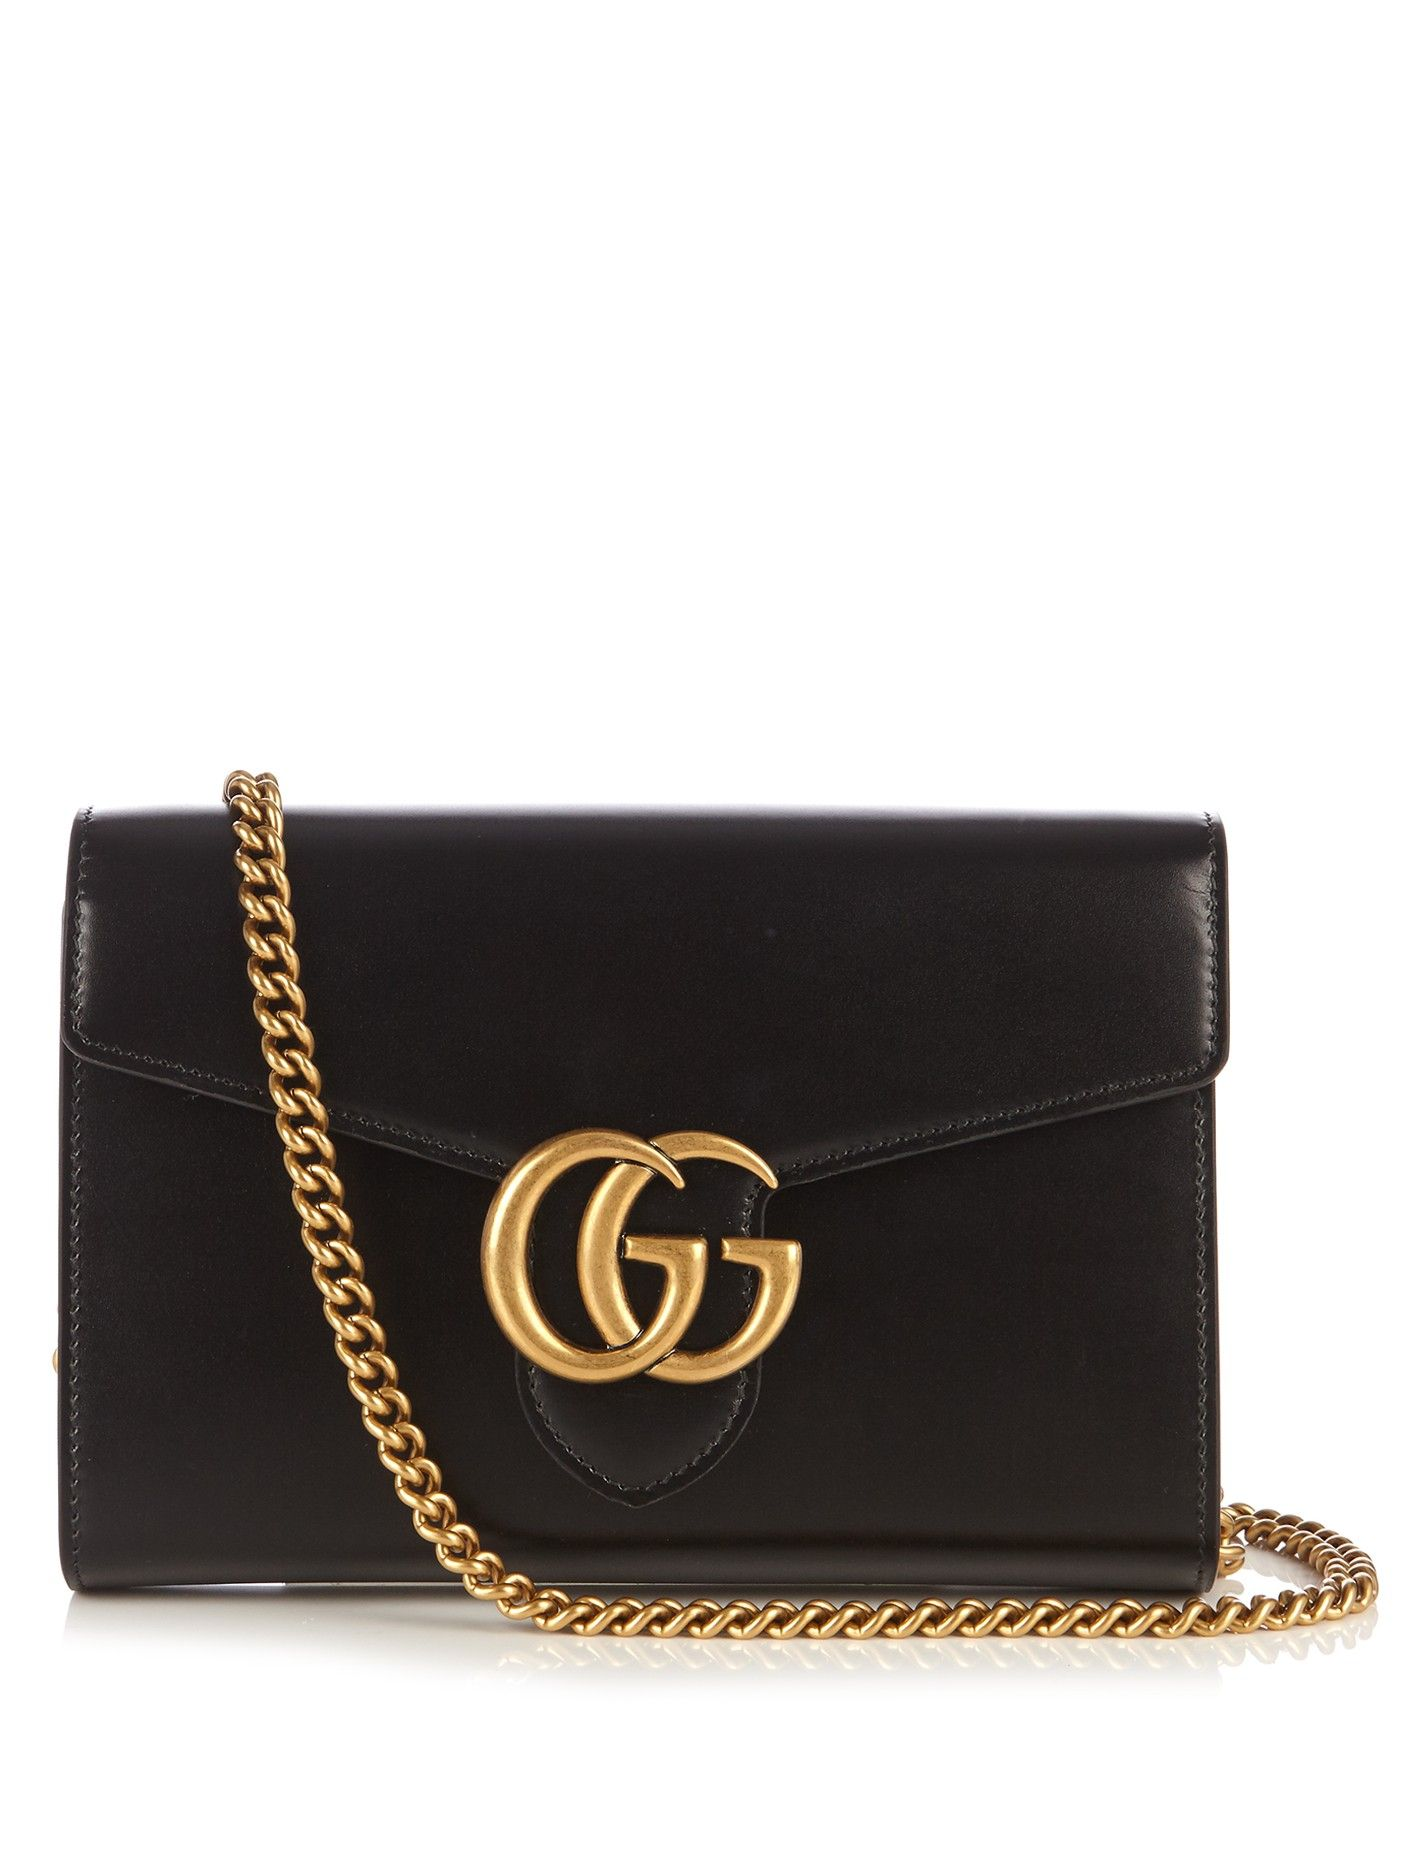 e0cf2b69b29fc8 GG Marmont leather cross-body bag | Gucci | MATCHESFASHION.COM UK ...